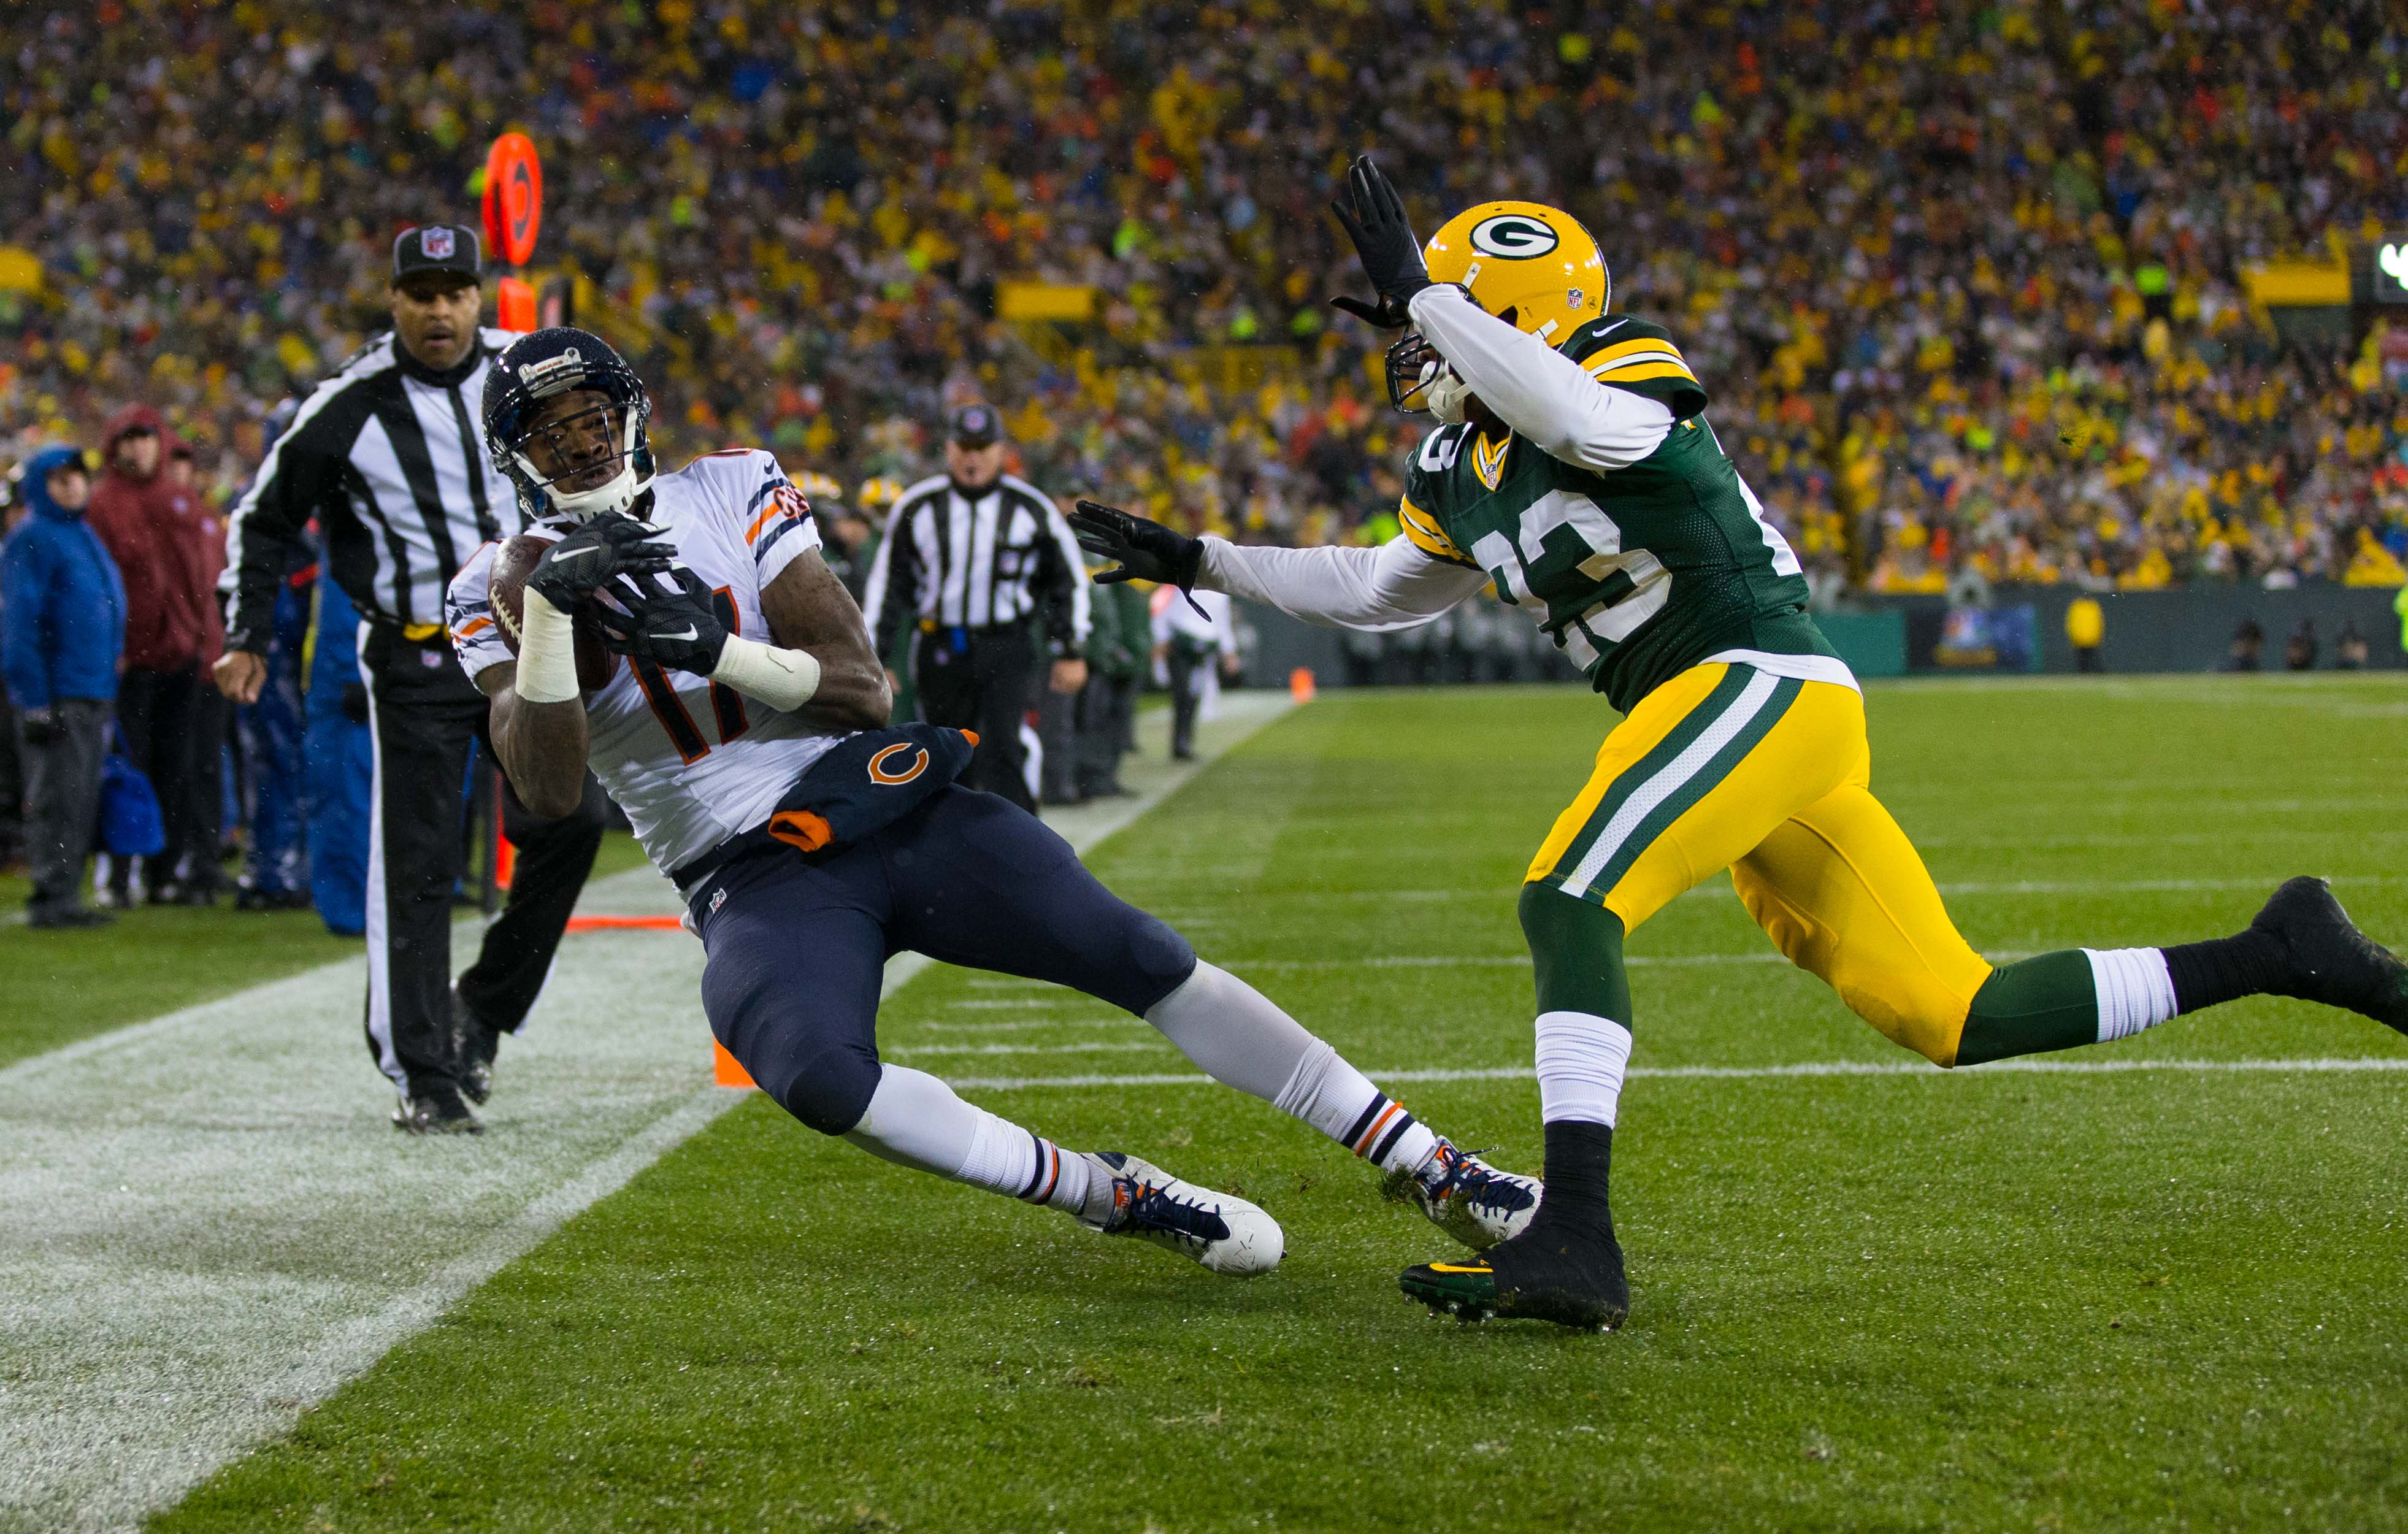 Nf Nfl Free Agents 2016 Rankings - Nov 26 2015 green bay wi usa chicago bears wide receiver